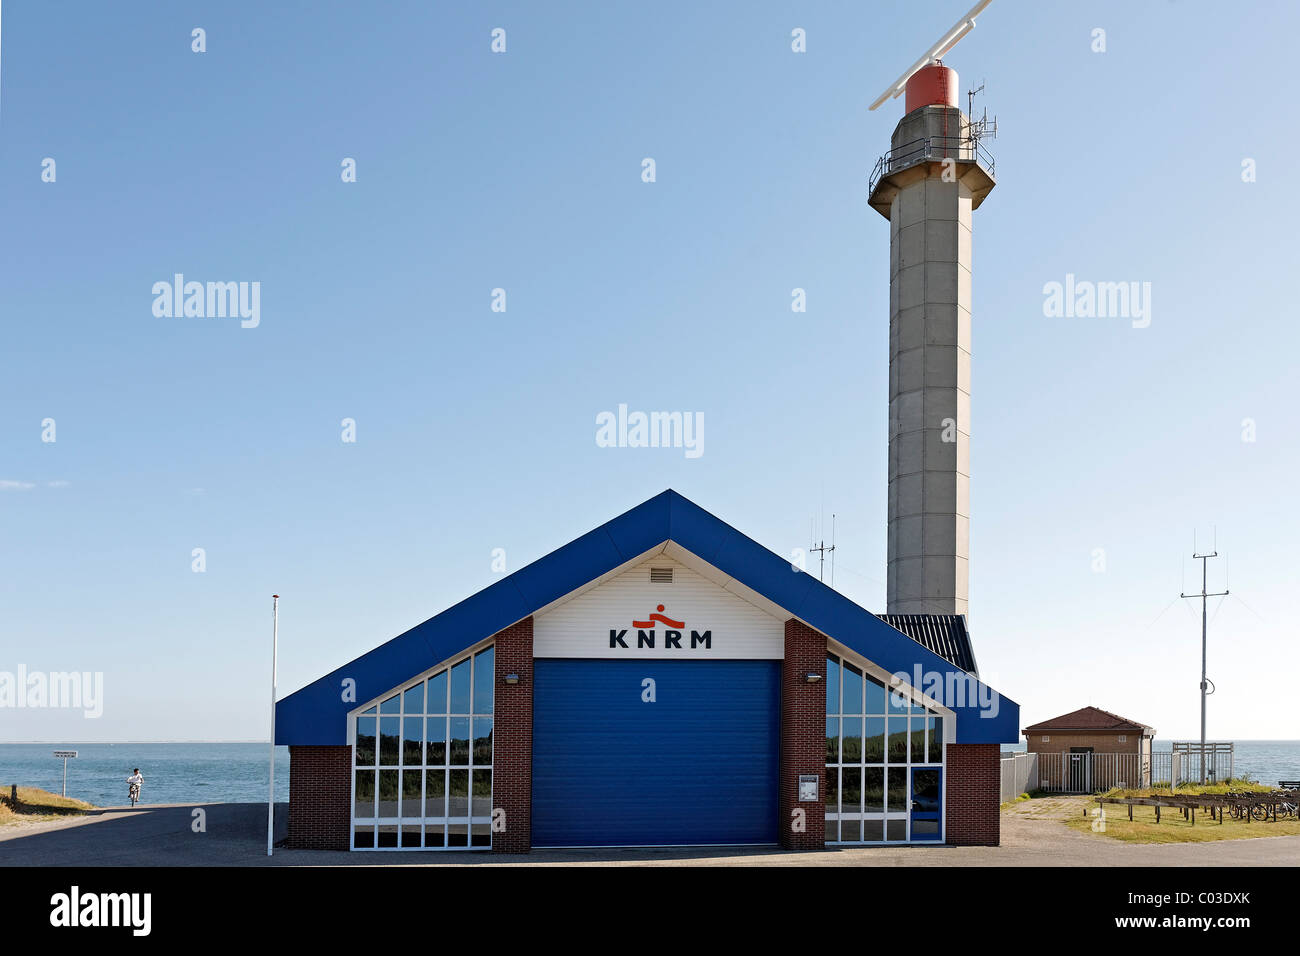 Rescue centre of the Royal Netherlands Lifeboat Institution, KNRM, with a radar tower, , Walcheren peninsula, Zeeland - Stock Image